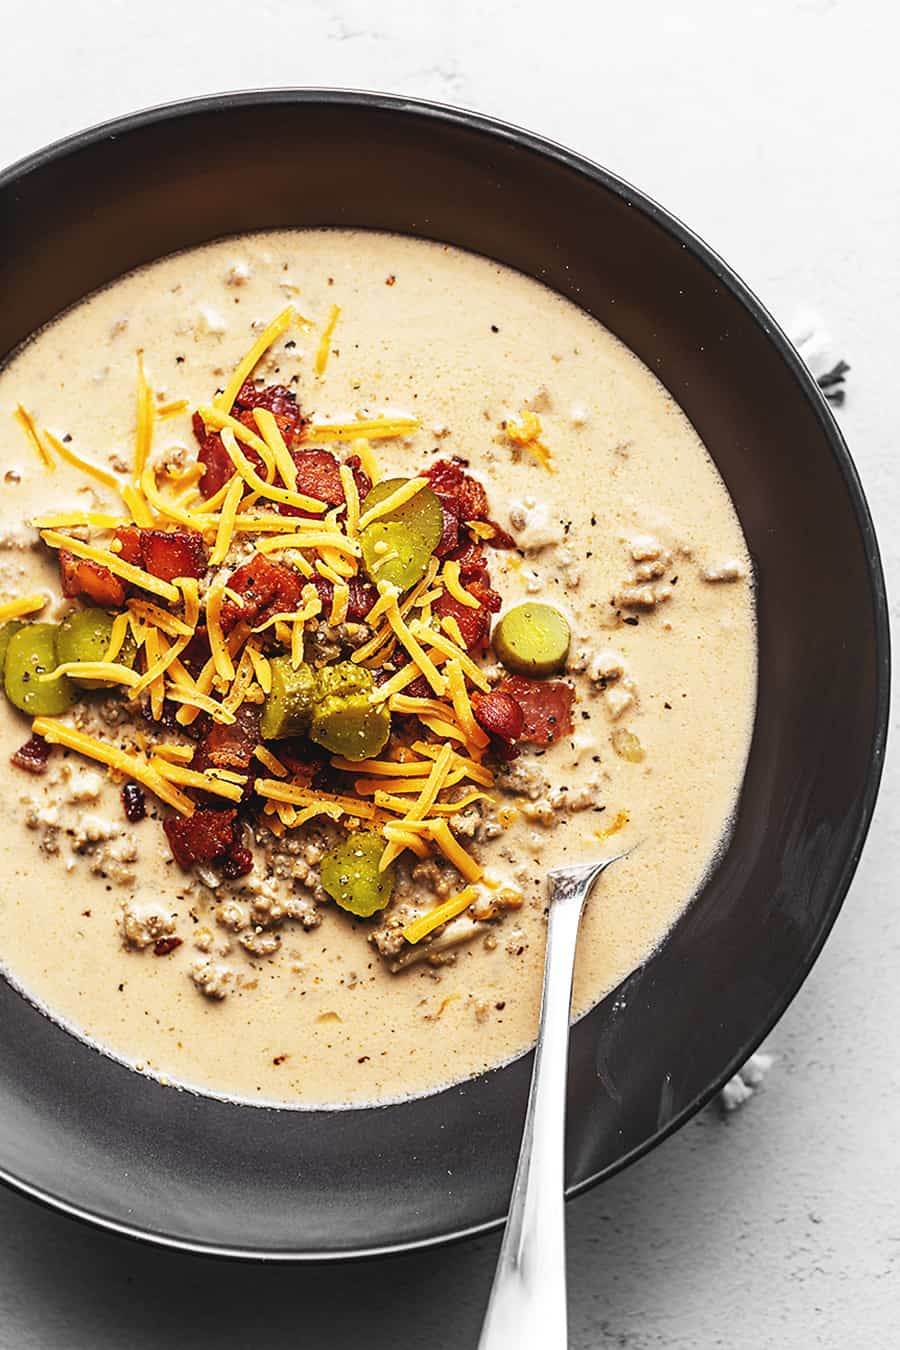 A CREAMY SOUP WITH HAMBURGER, BACON, CHEESE, AND PICKLES IN A BLACK BOWL